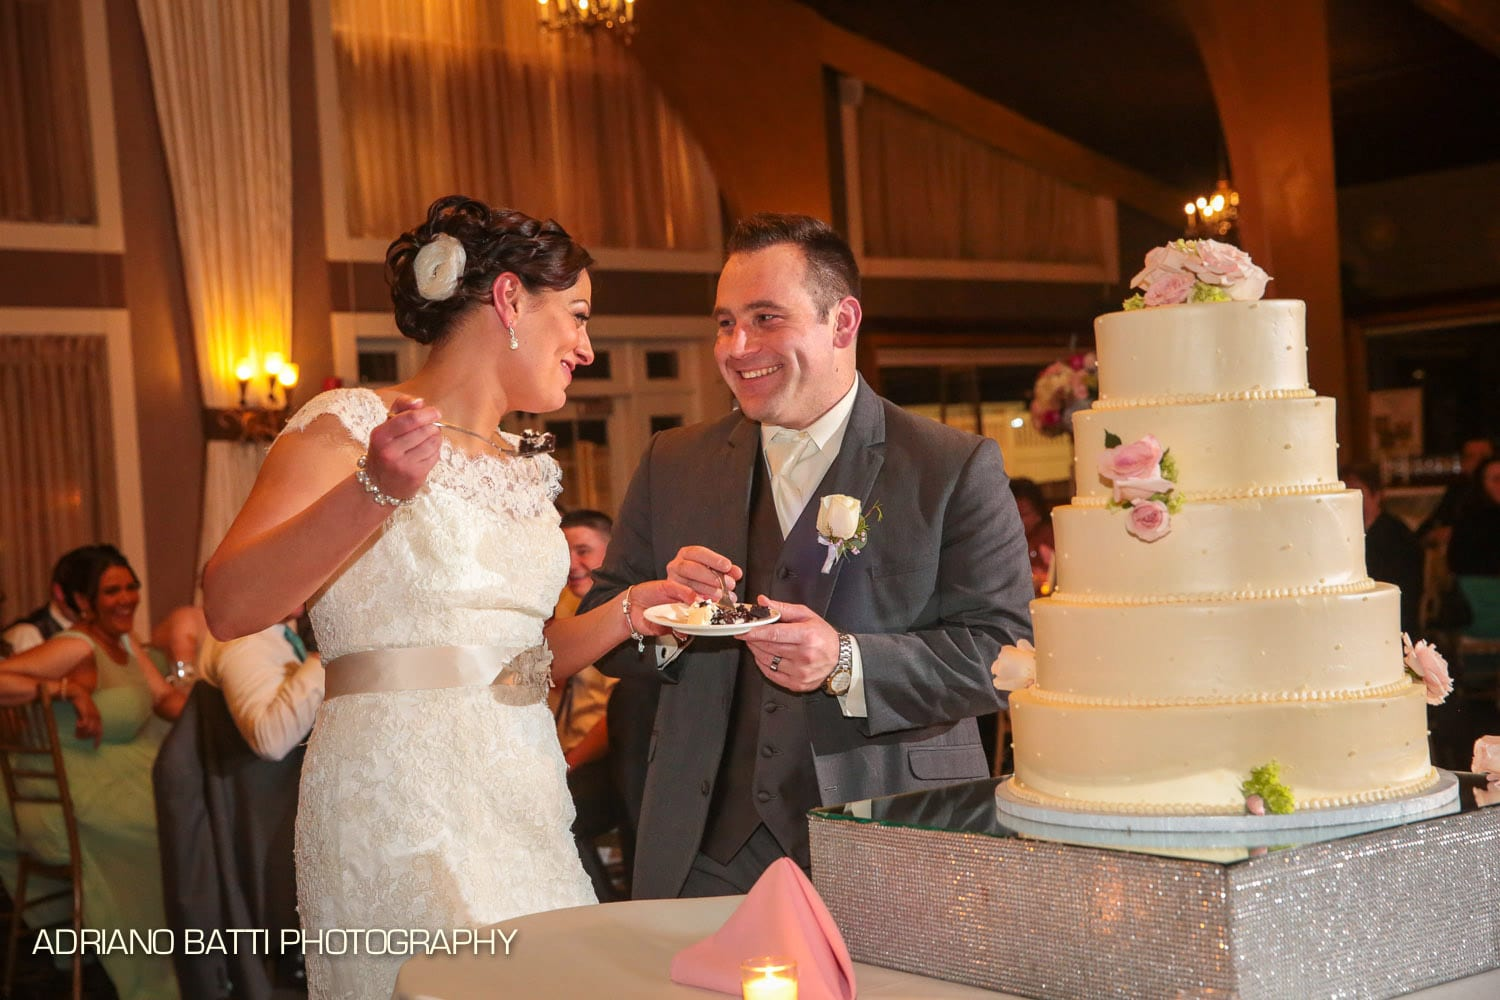 A couple cuts the cake in the Harborview Ballroom